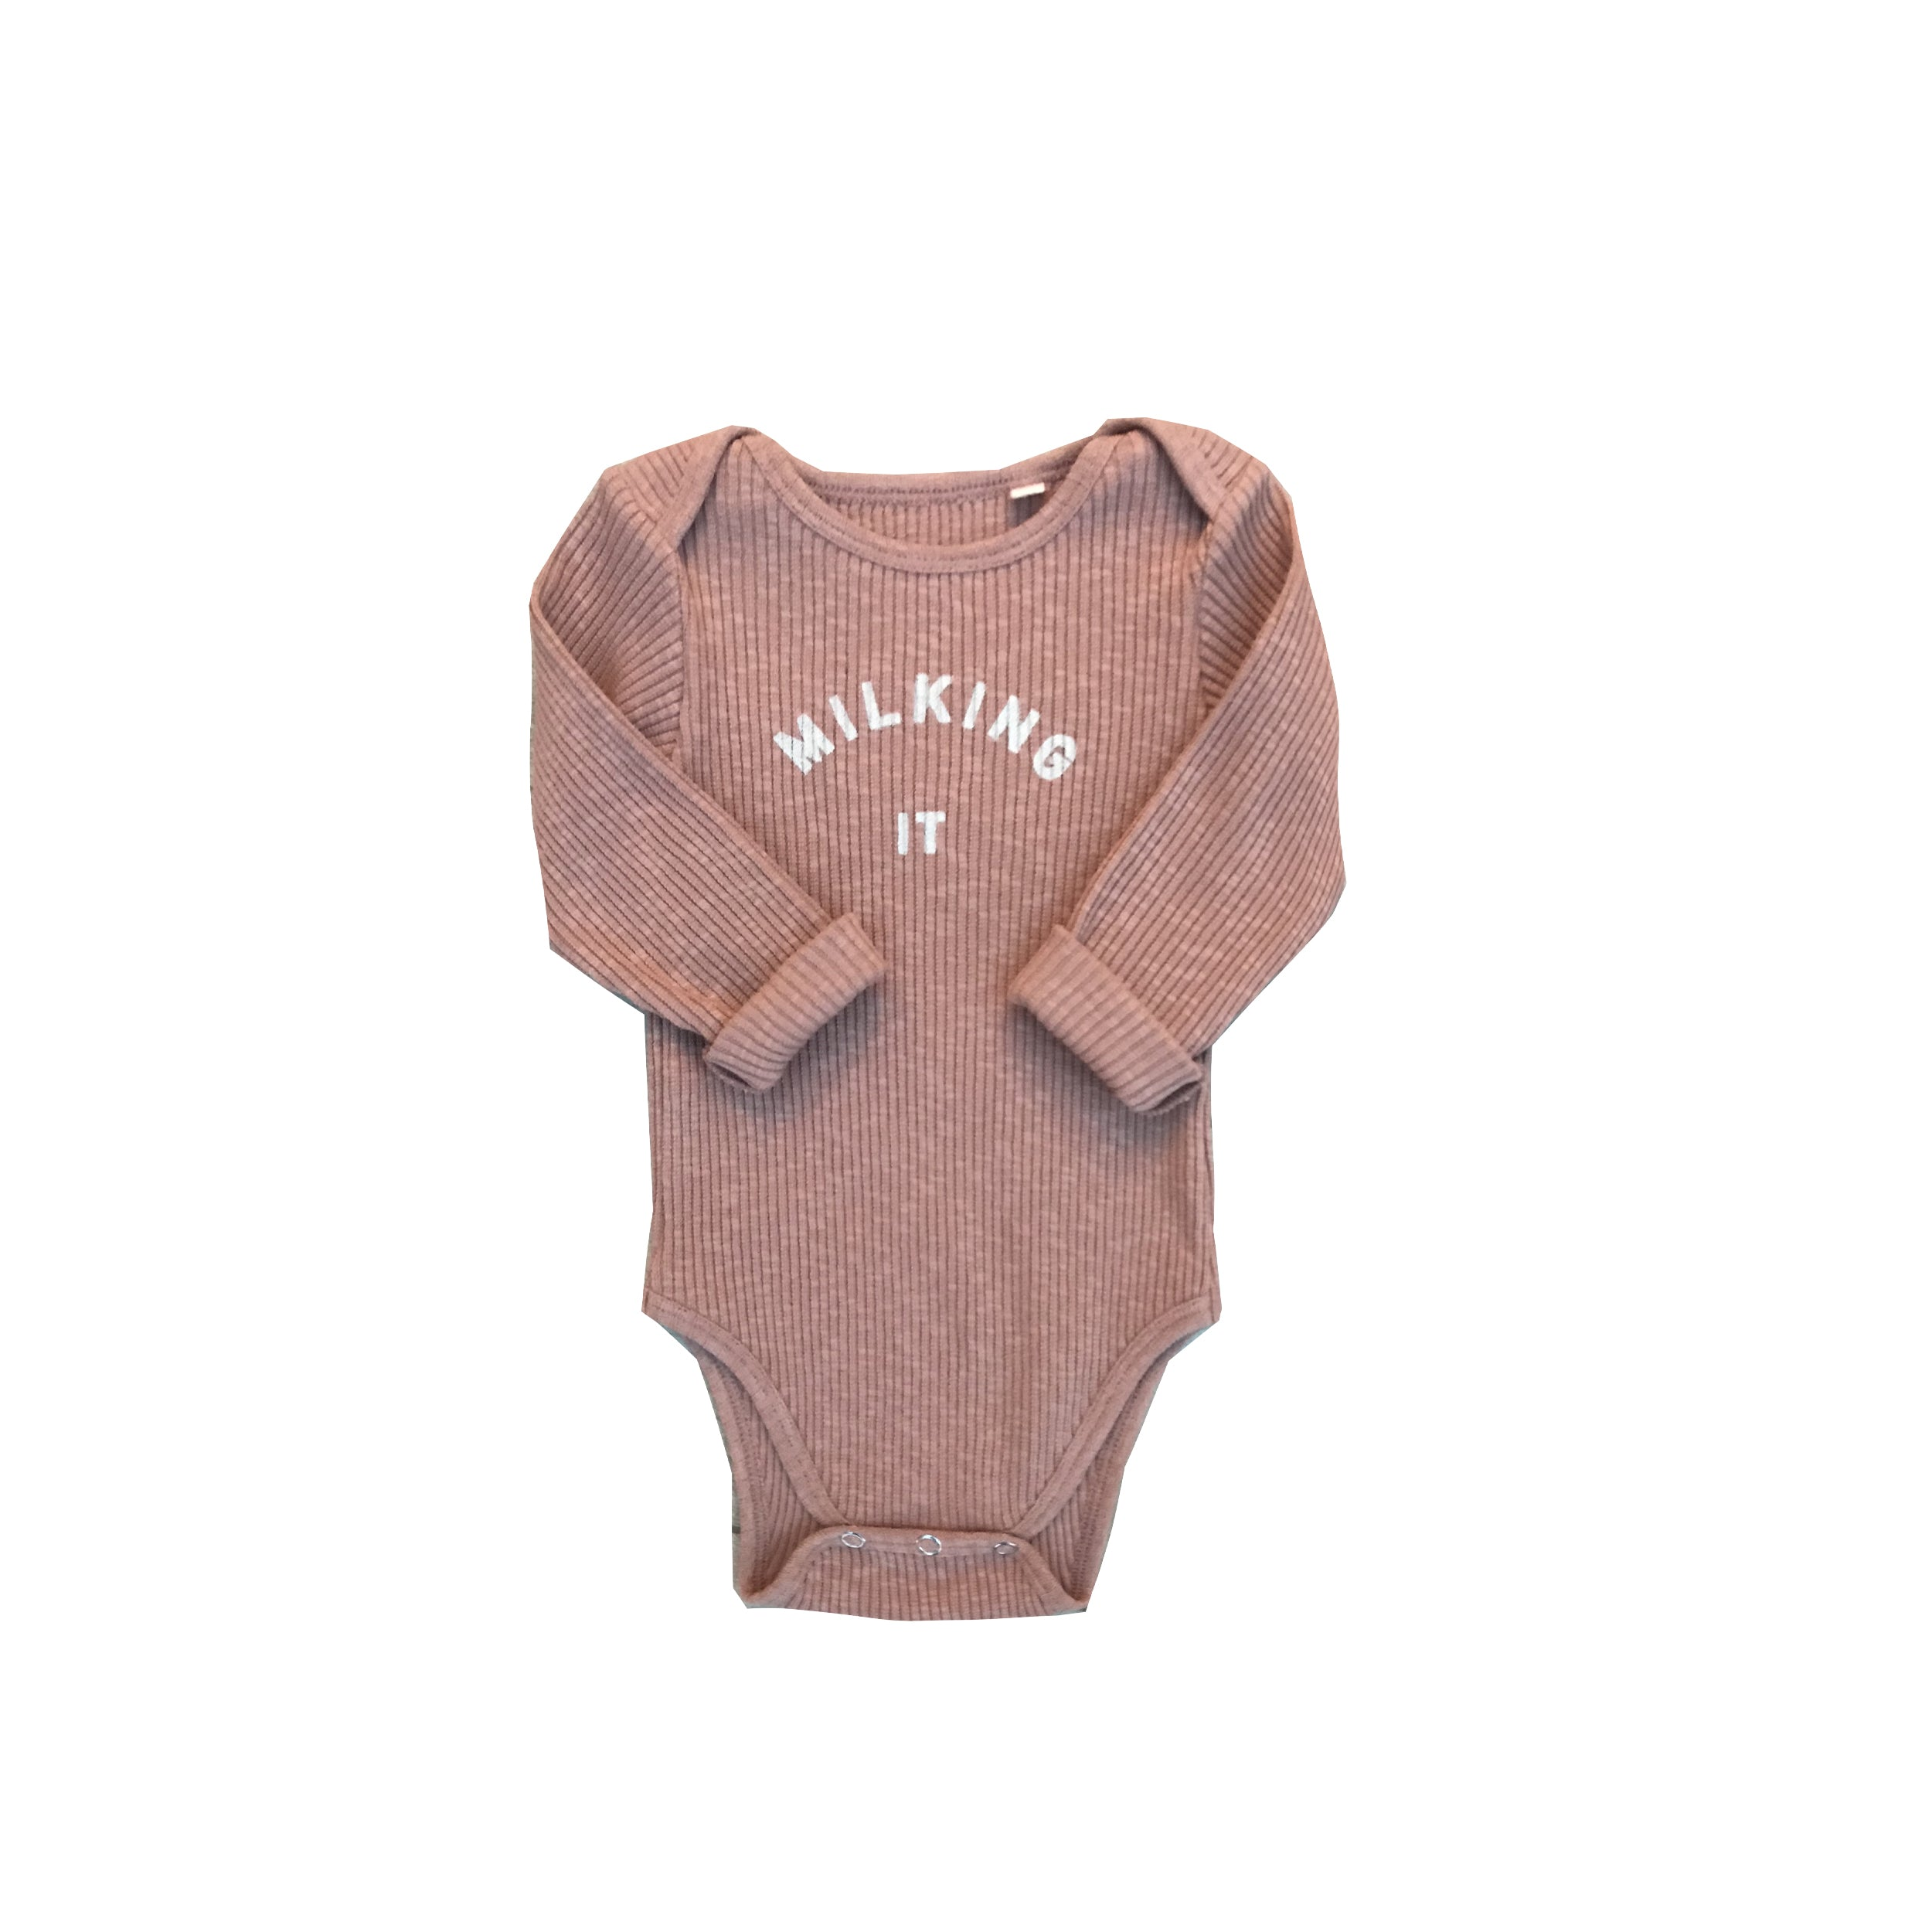 Claude & Co 'Milking It' ® Organic Clay Rib Bodysuit